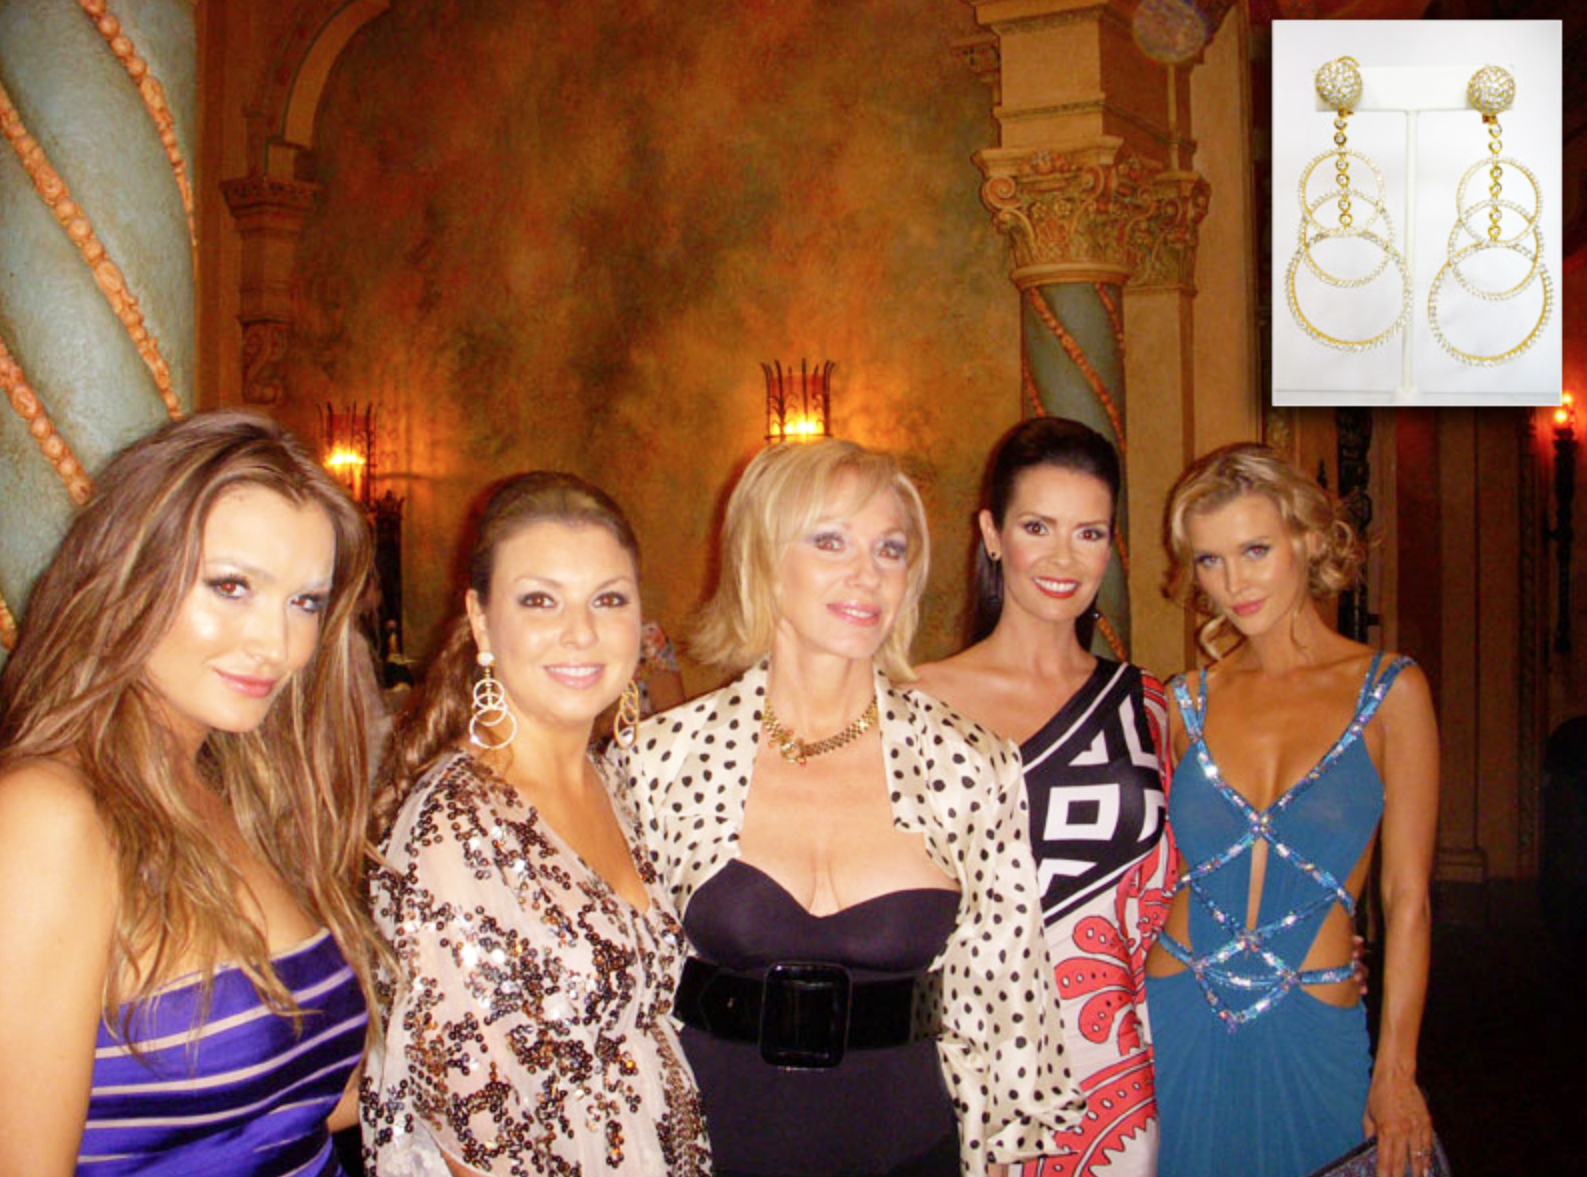 Christina Termine, owner of 'Diamonds On The Key' wearing 'Circles' diamond earrings at the Miami Film Festival Premiere with cast members from the RHOM.